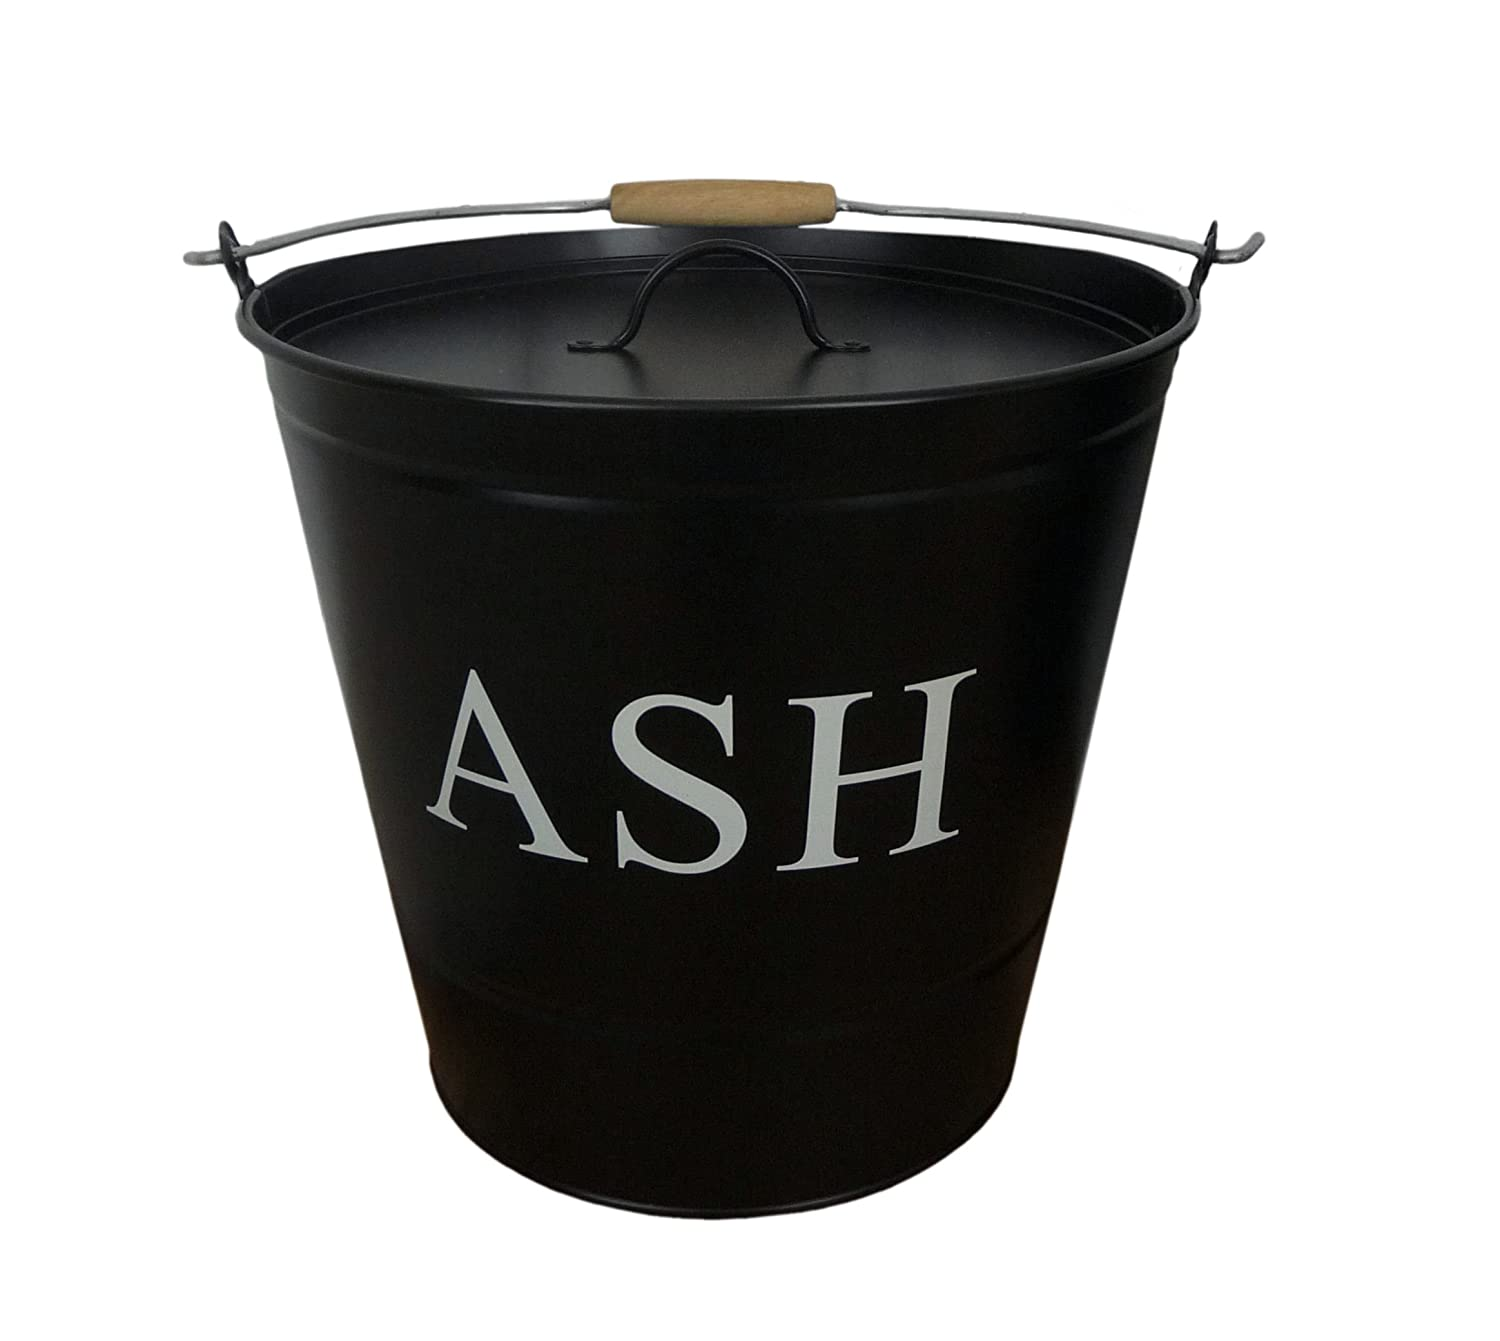 Free delivery and returns on all eligible orders. Shop east2eden 15 Litre Black Enamel Style Metal Fireplace Fireside Ash Bucket with Handle & Lid.